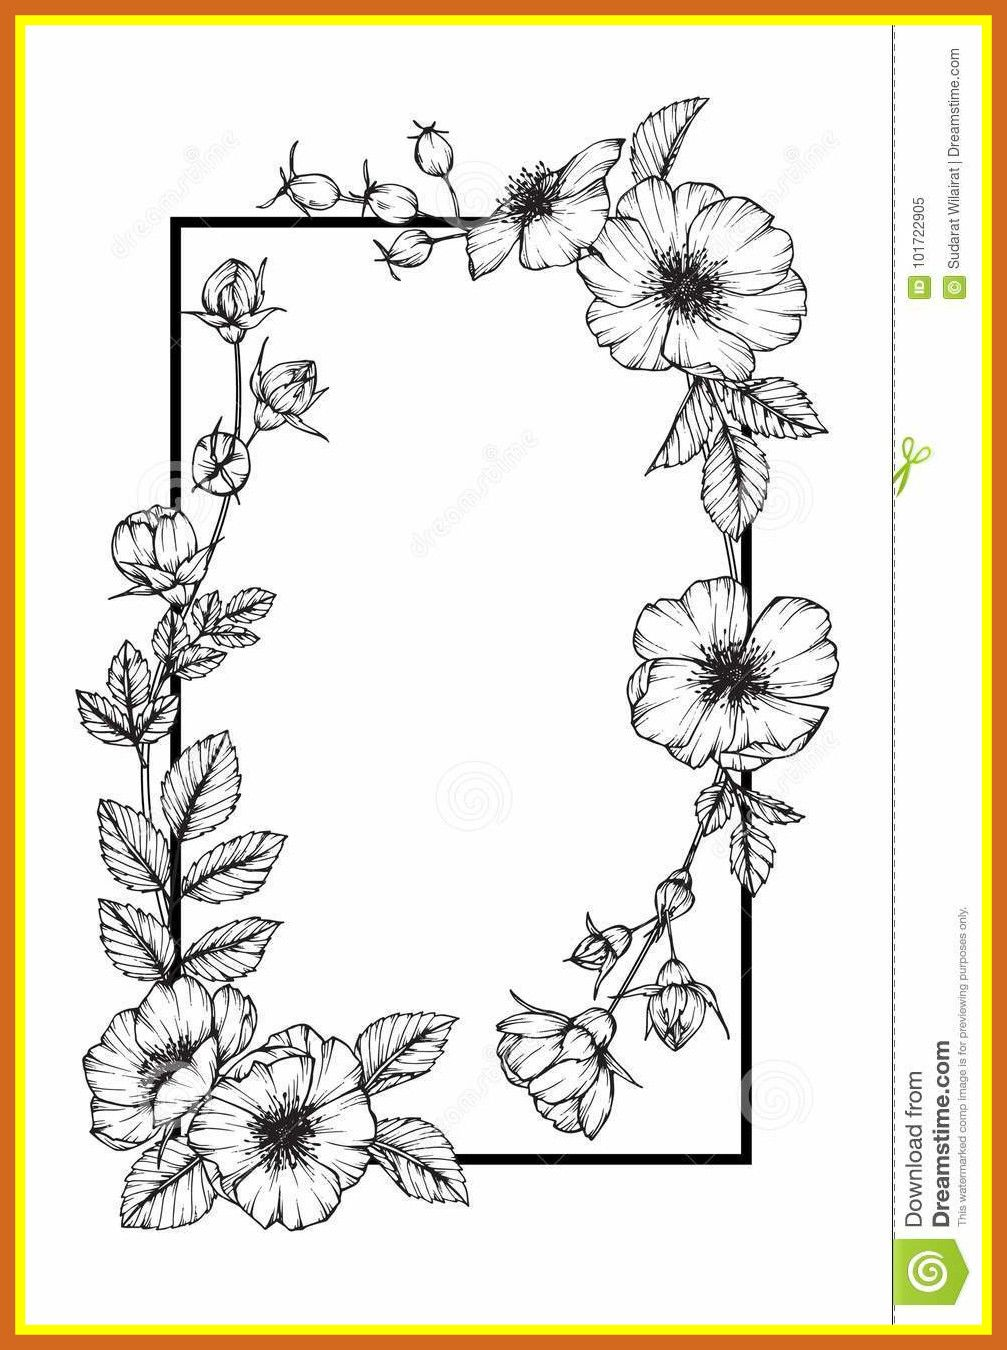 Flower Frame Sketch Flower Sketch Images Wildflower Drawing Flower Drawing